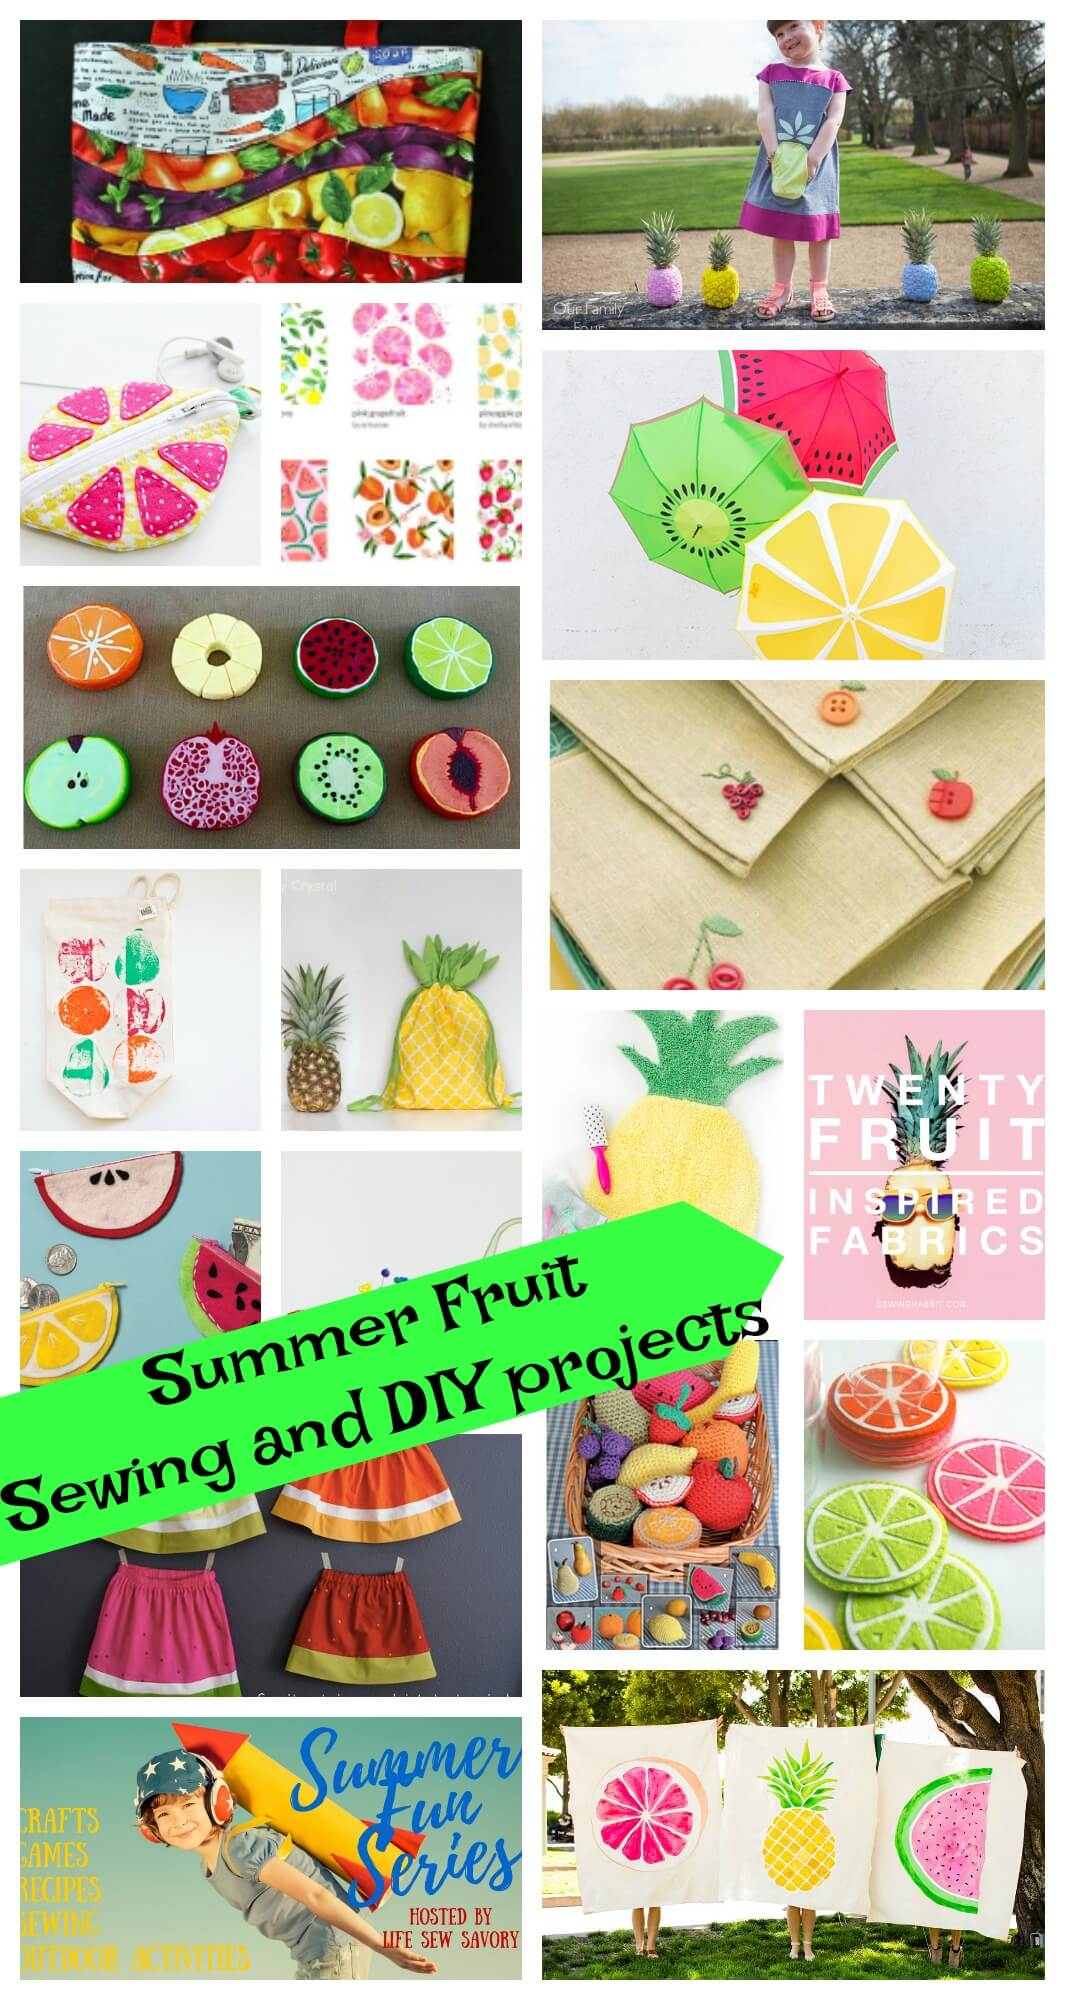 Summer projects and Summer sewing DIY with fruit by Life Sew Savory for the Summer Fun Series